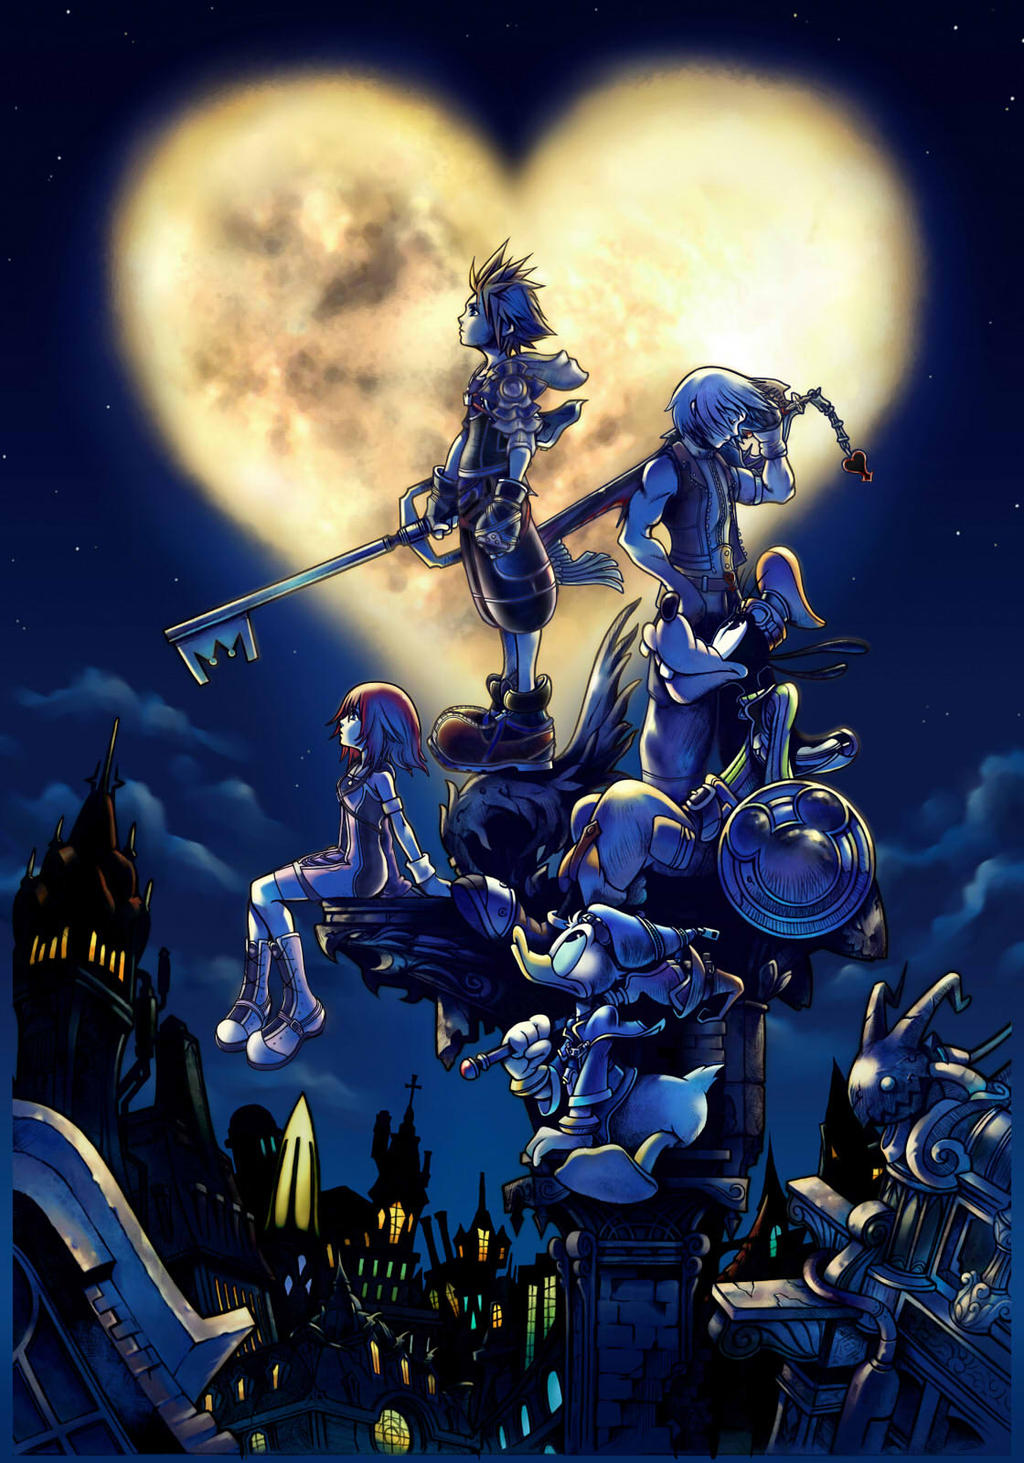 kh_1_cover_edit_request_by_keyblades_cho